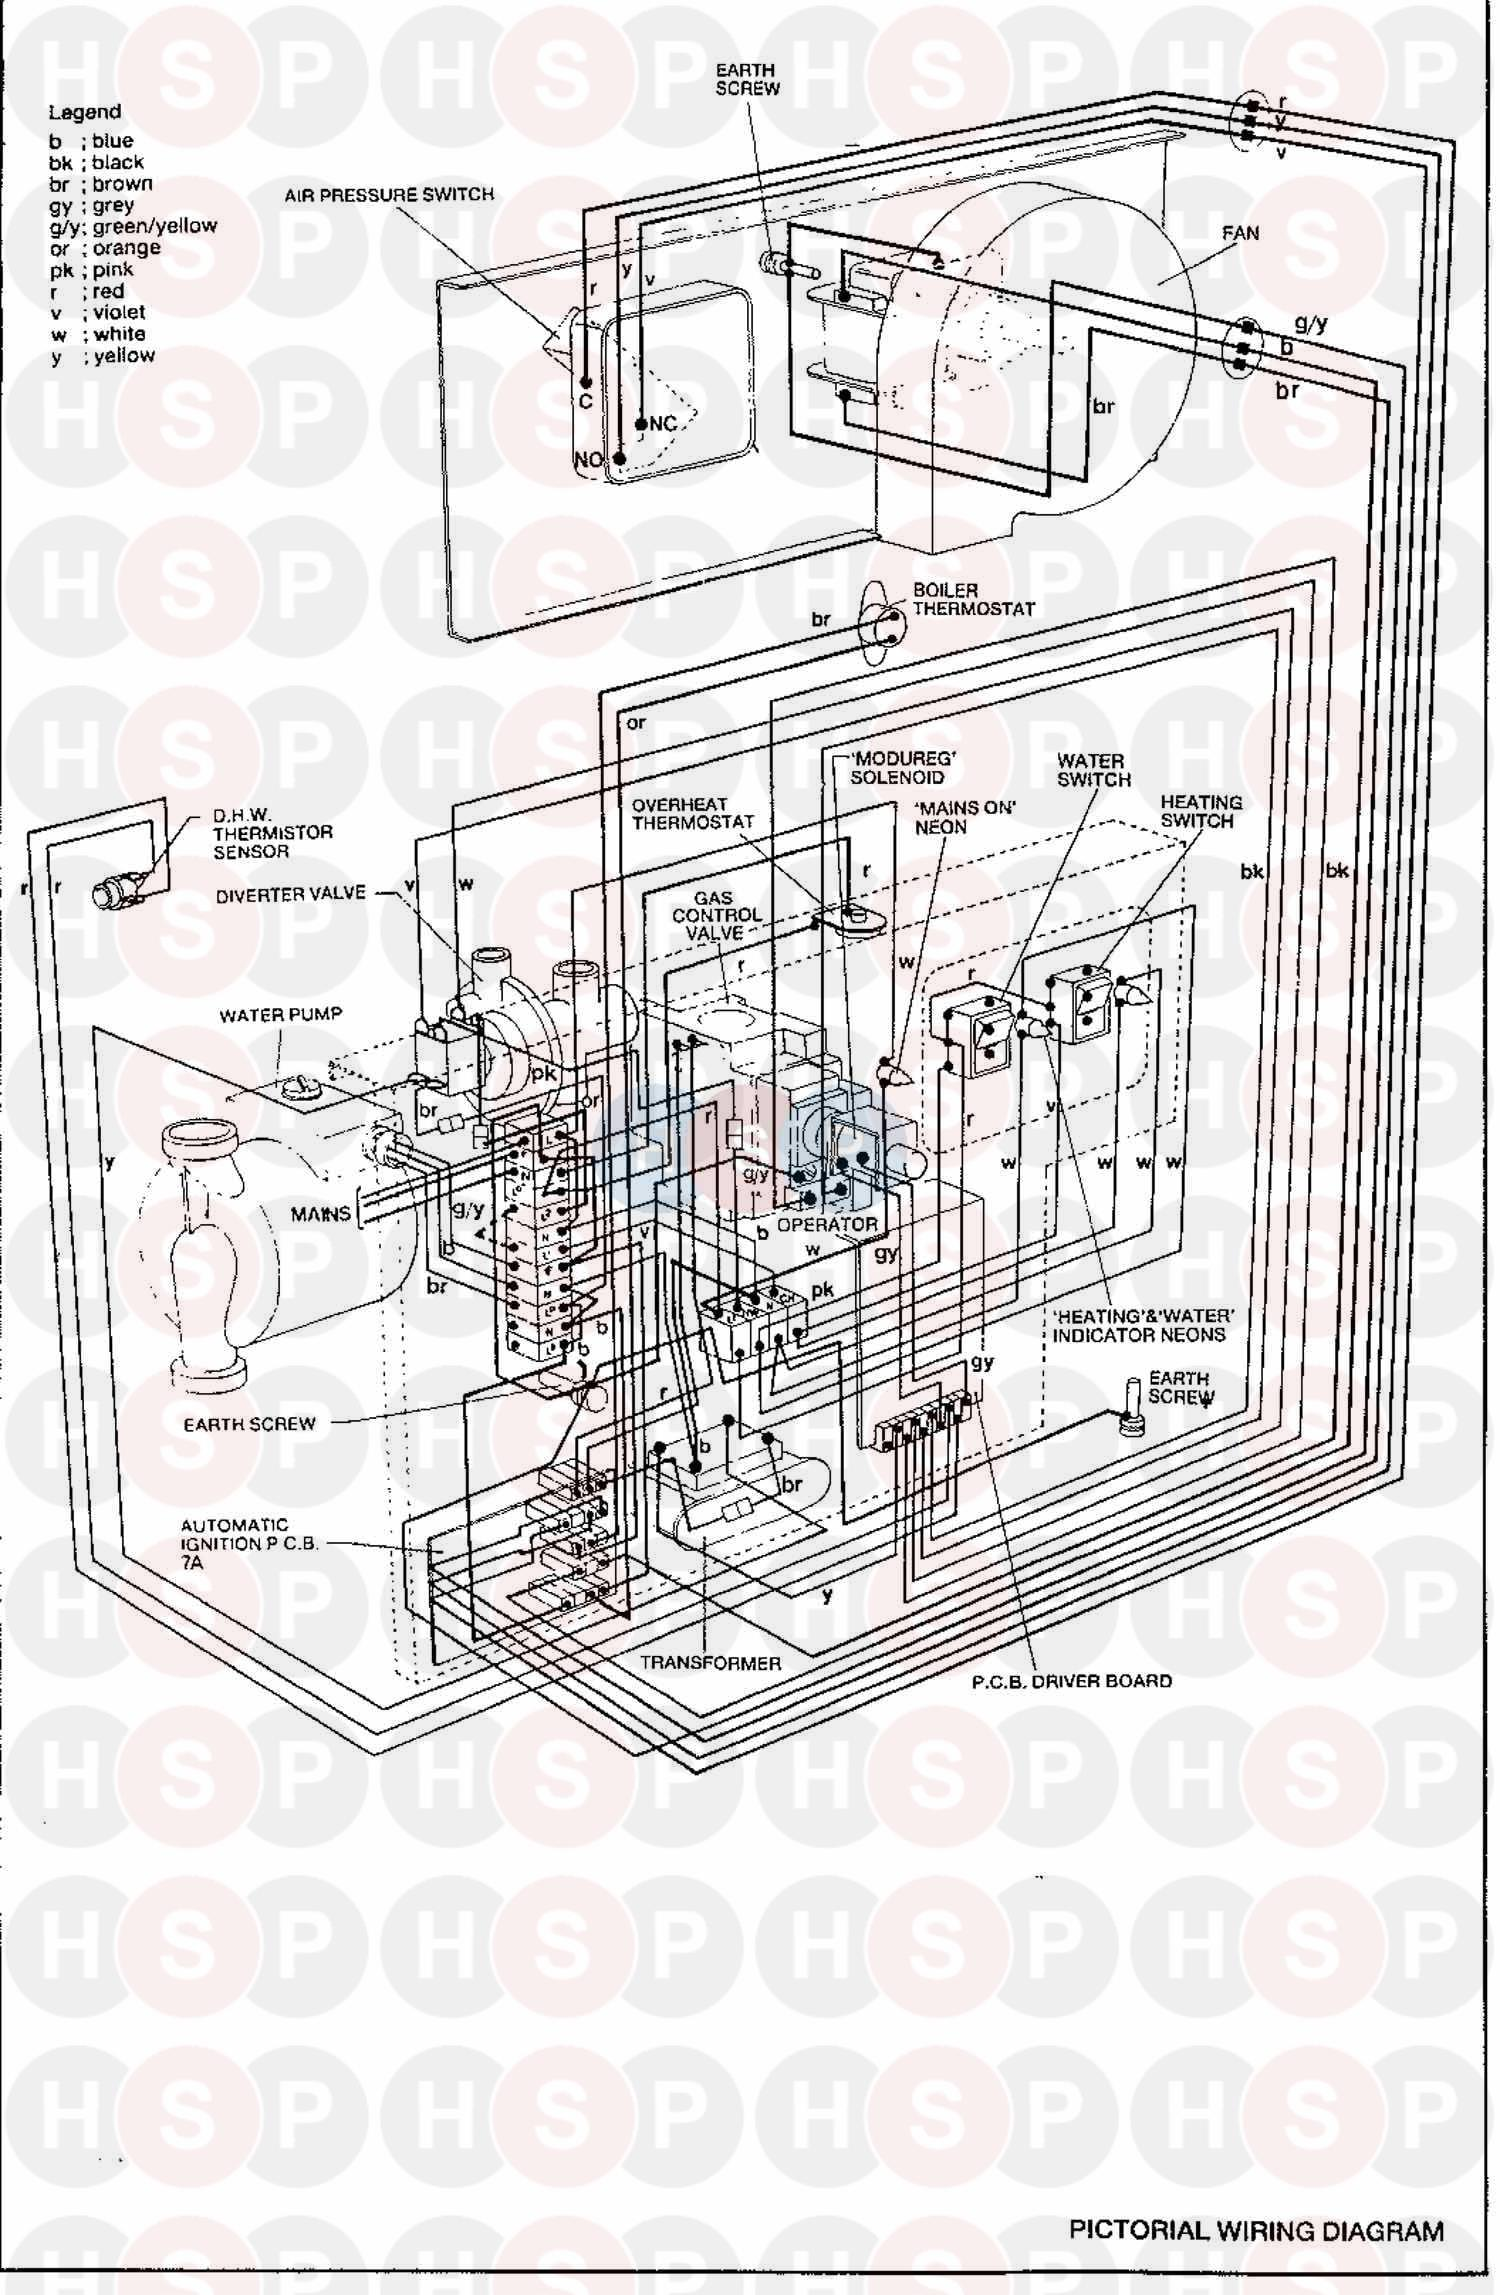 ideal sprint 80f  wiring diagram 2  diagram